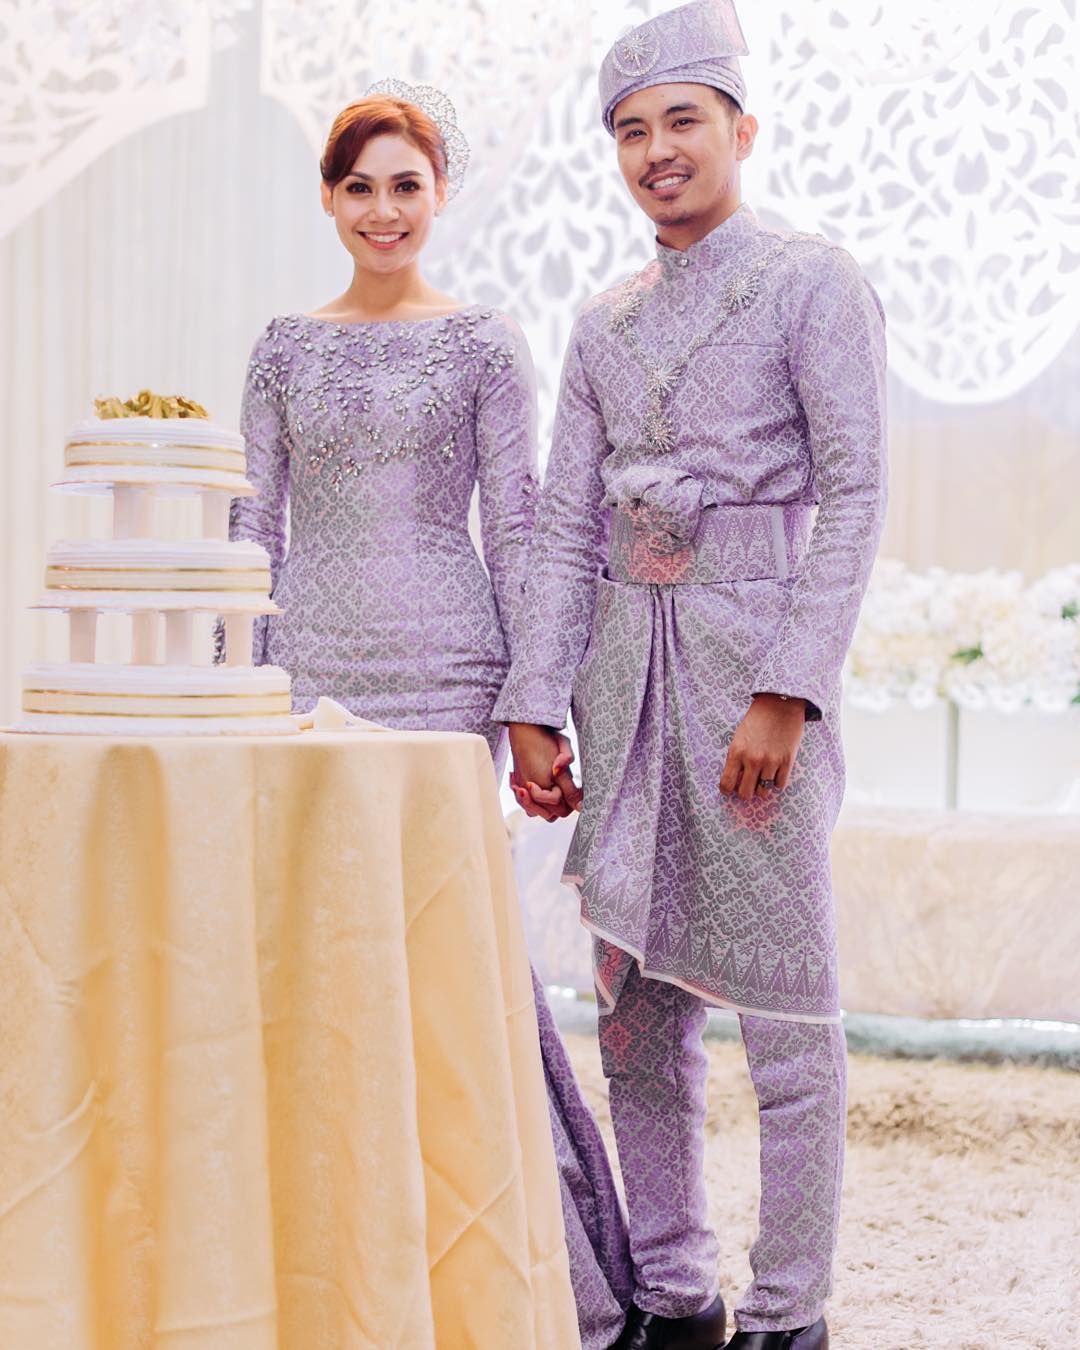 Wedding Gown Malaysia: Amazing Traditional Wedding Costumes Of Southeast Asia